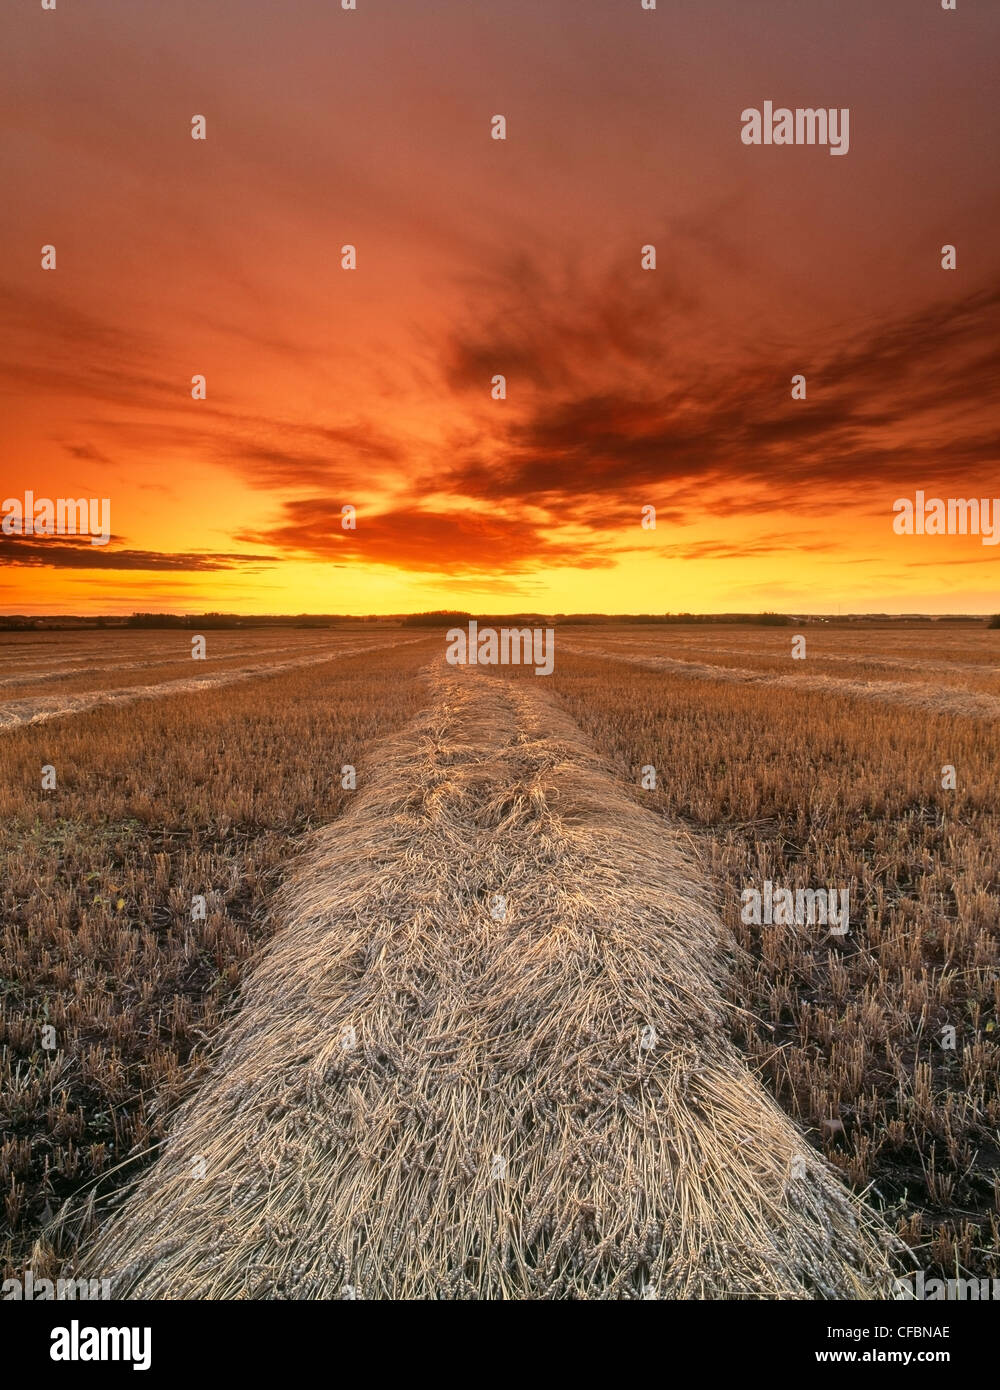 Harvested wheat crop at sunset in fall, Leduc, Alberta, Canada - Stock Image